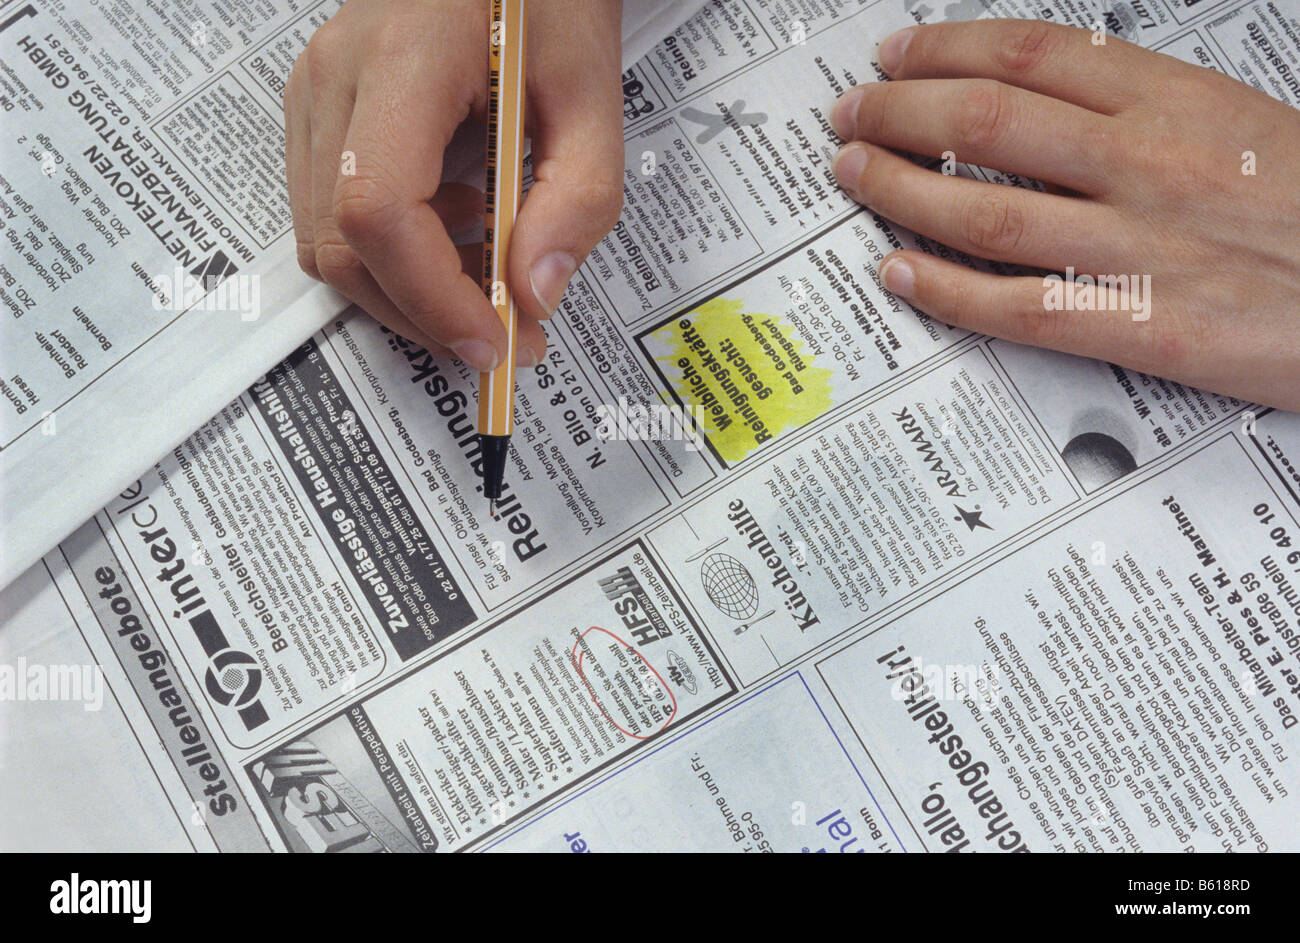 Job search, hand marking job advertisements for cleaning help with a pen, newspaper - Stock Image